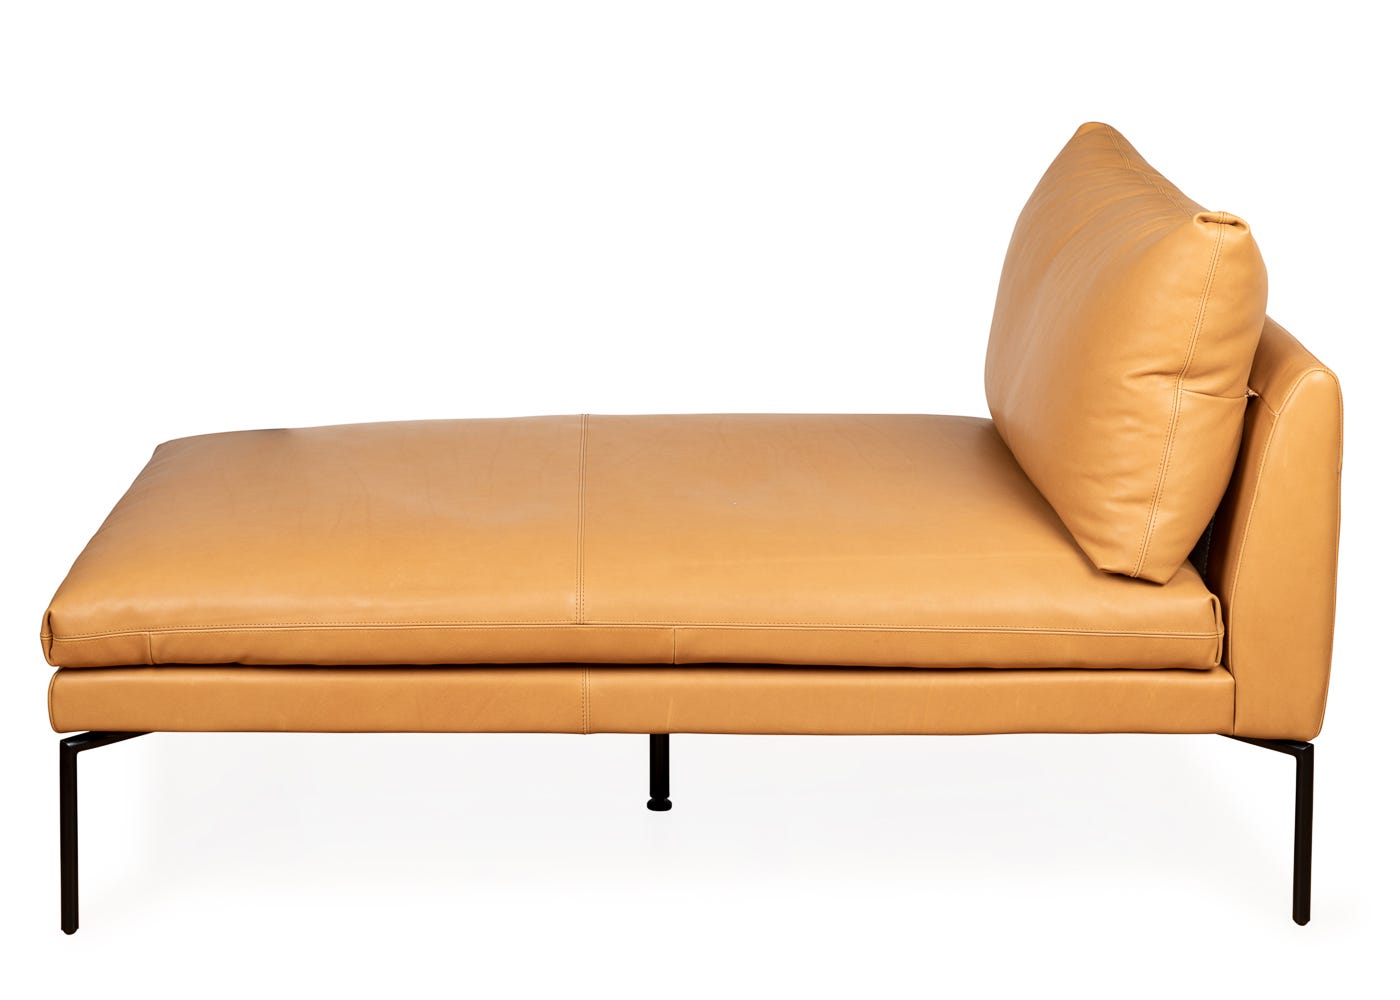 Heal's Matera Chaise Longue Leather Hide Chocolate 7182